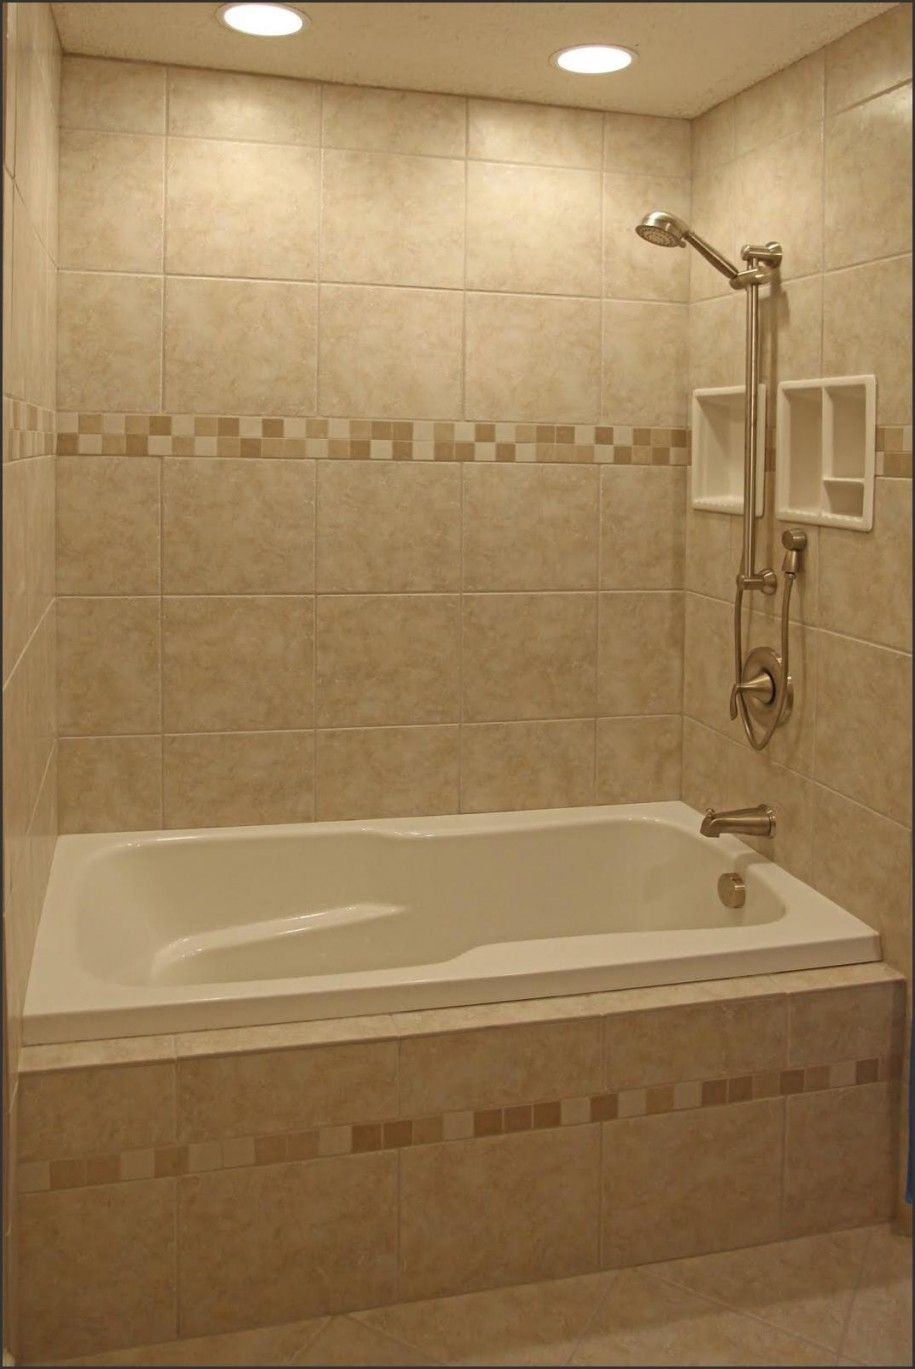 Awesome shower tile ideas make perfect bathroom designs for New bathtub designs